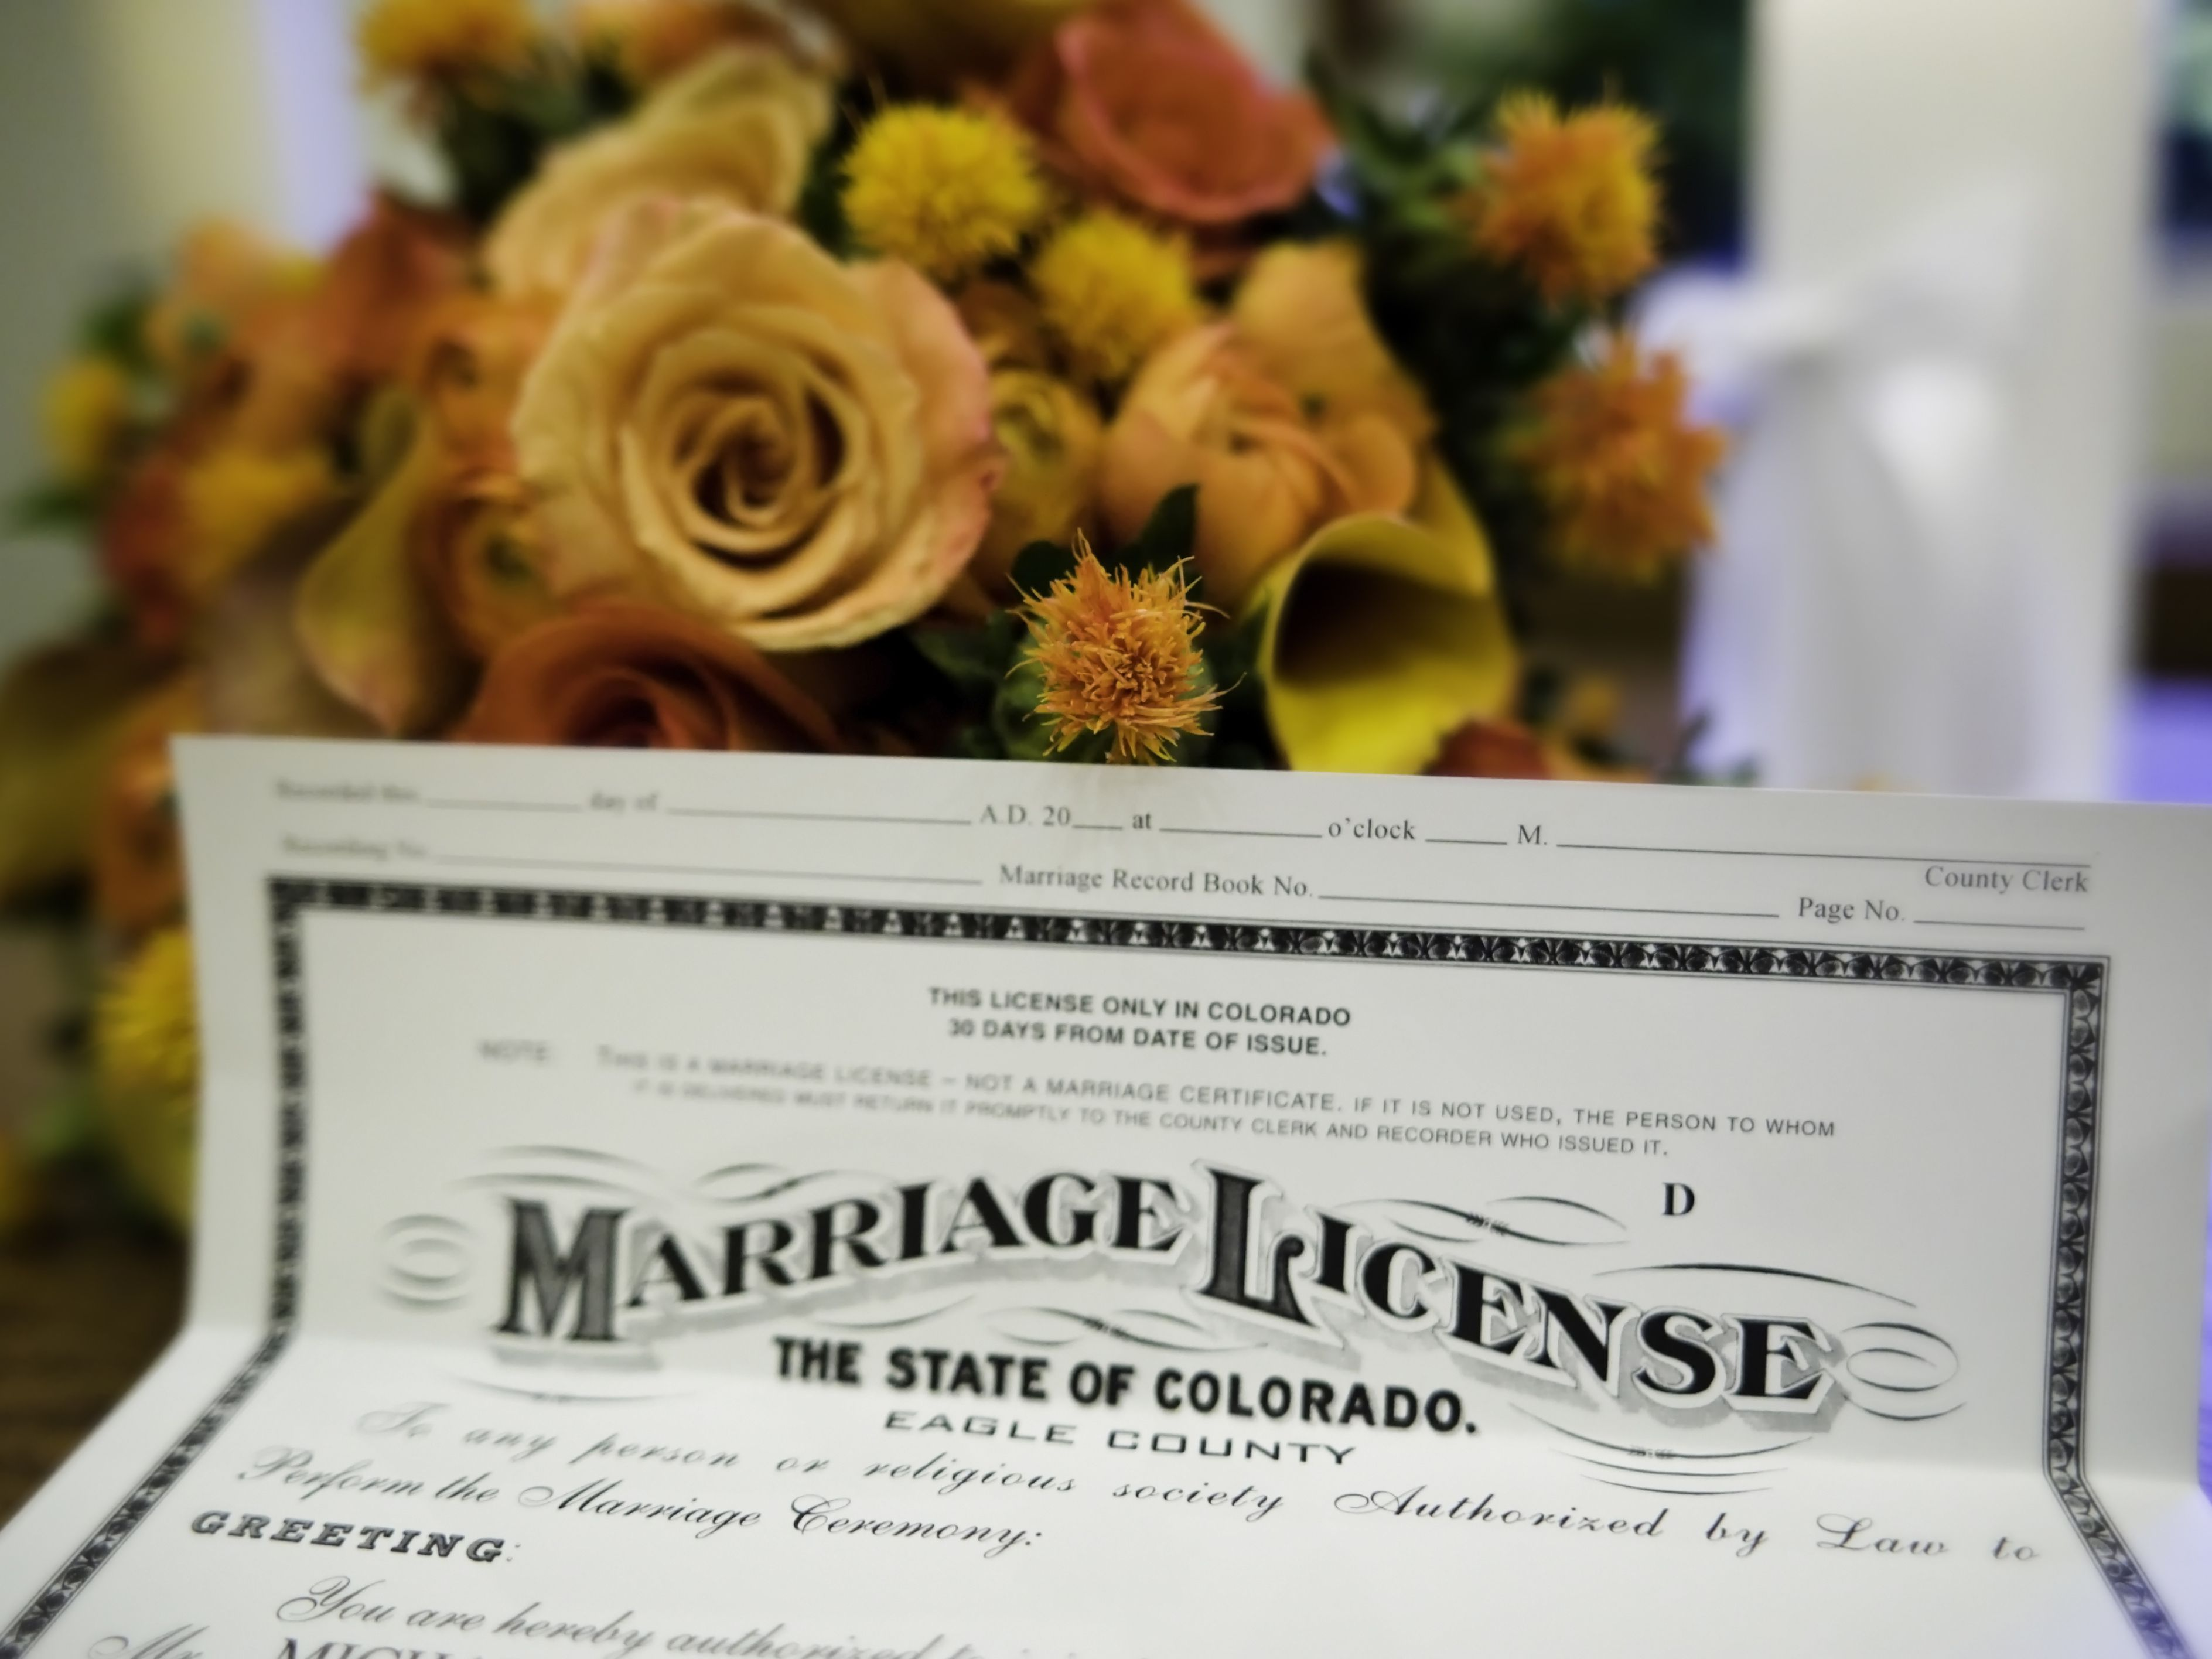 Getting Remarried: Legal Requirements and Documents You'll Need